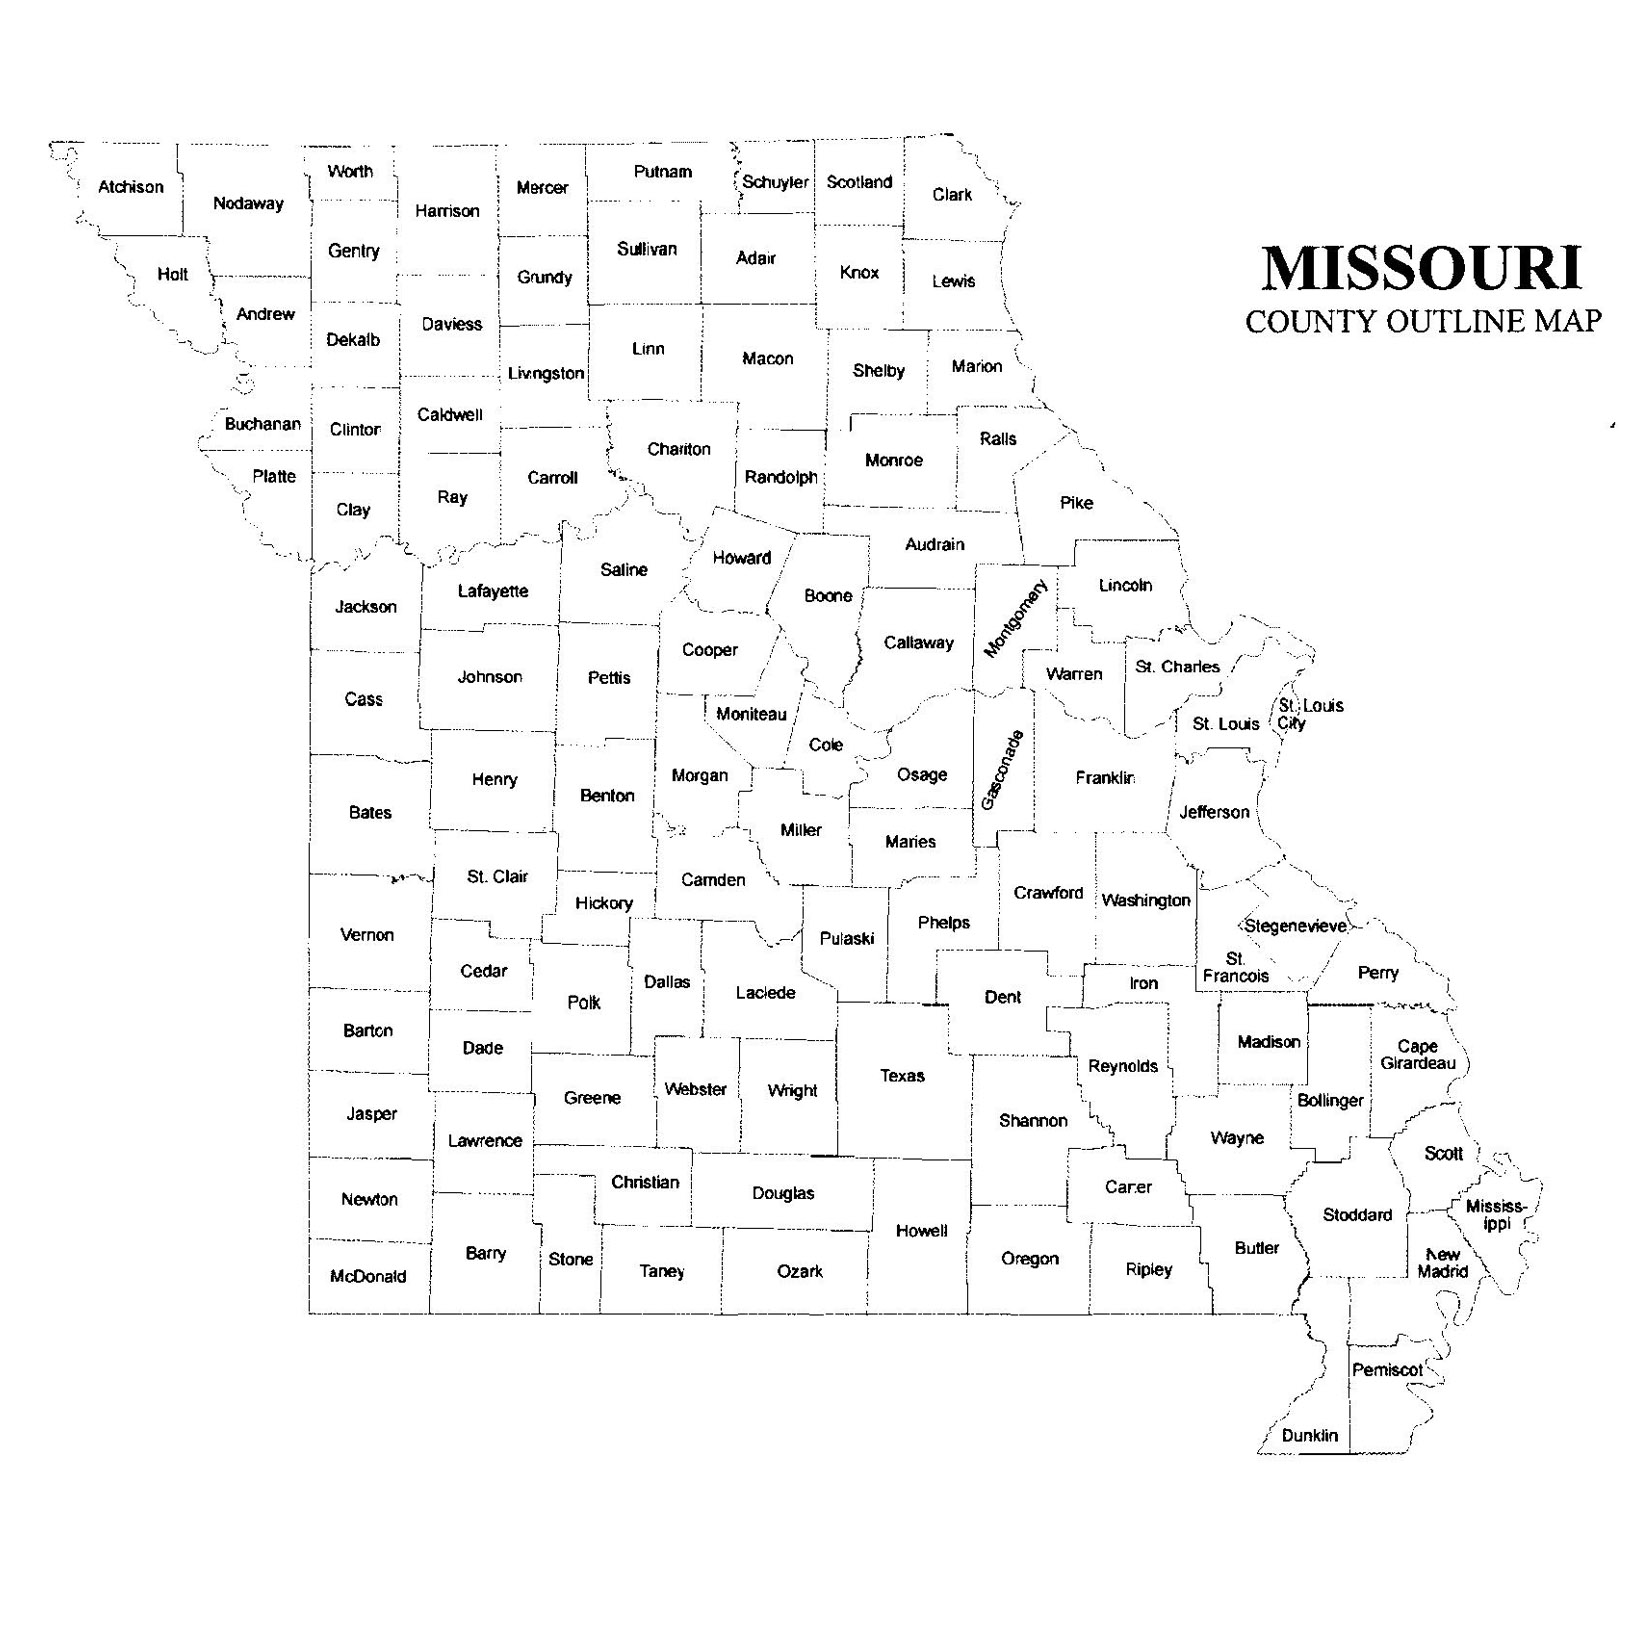 Missouri County Map JigsawGenealogy - Missouri county map